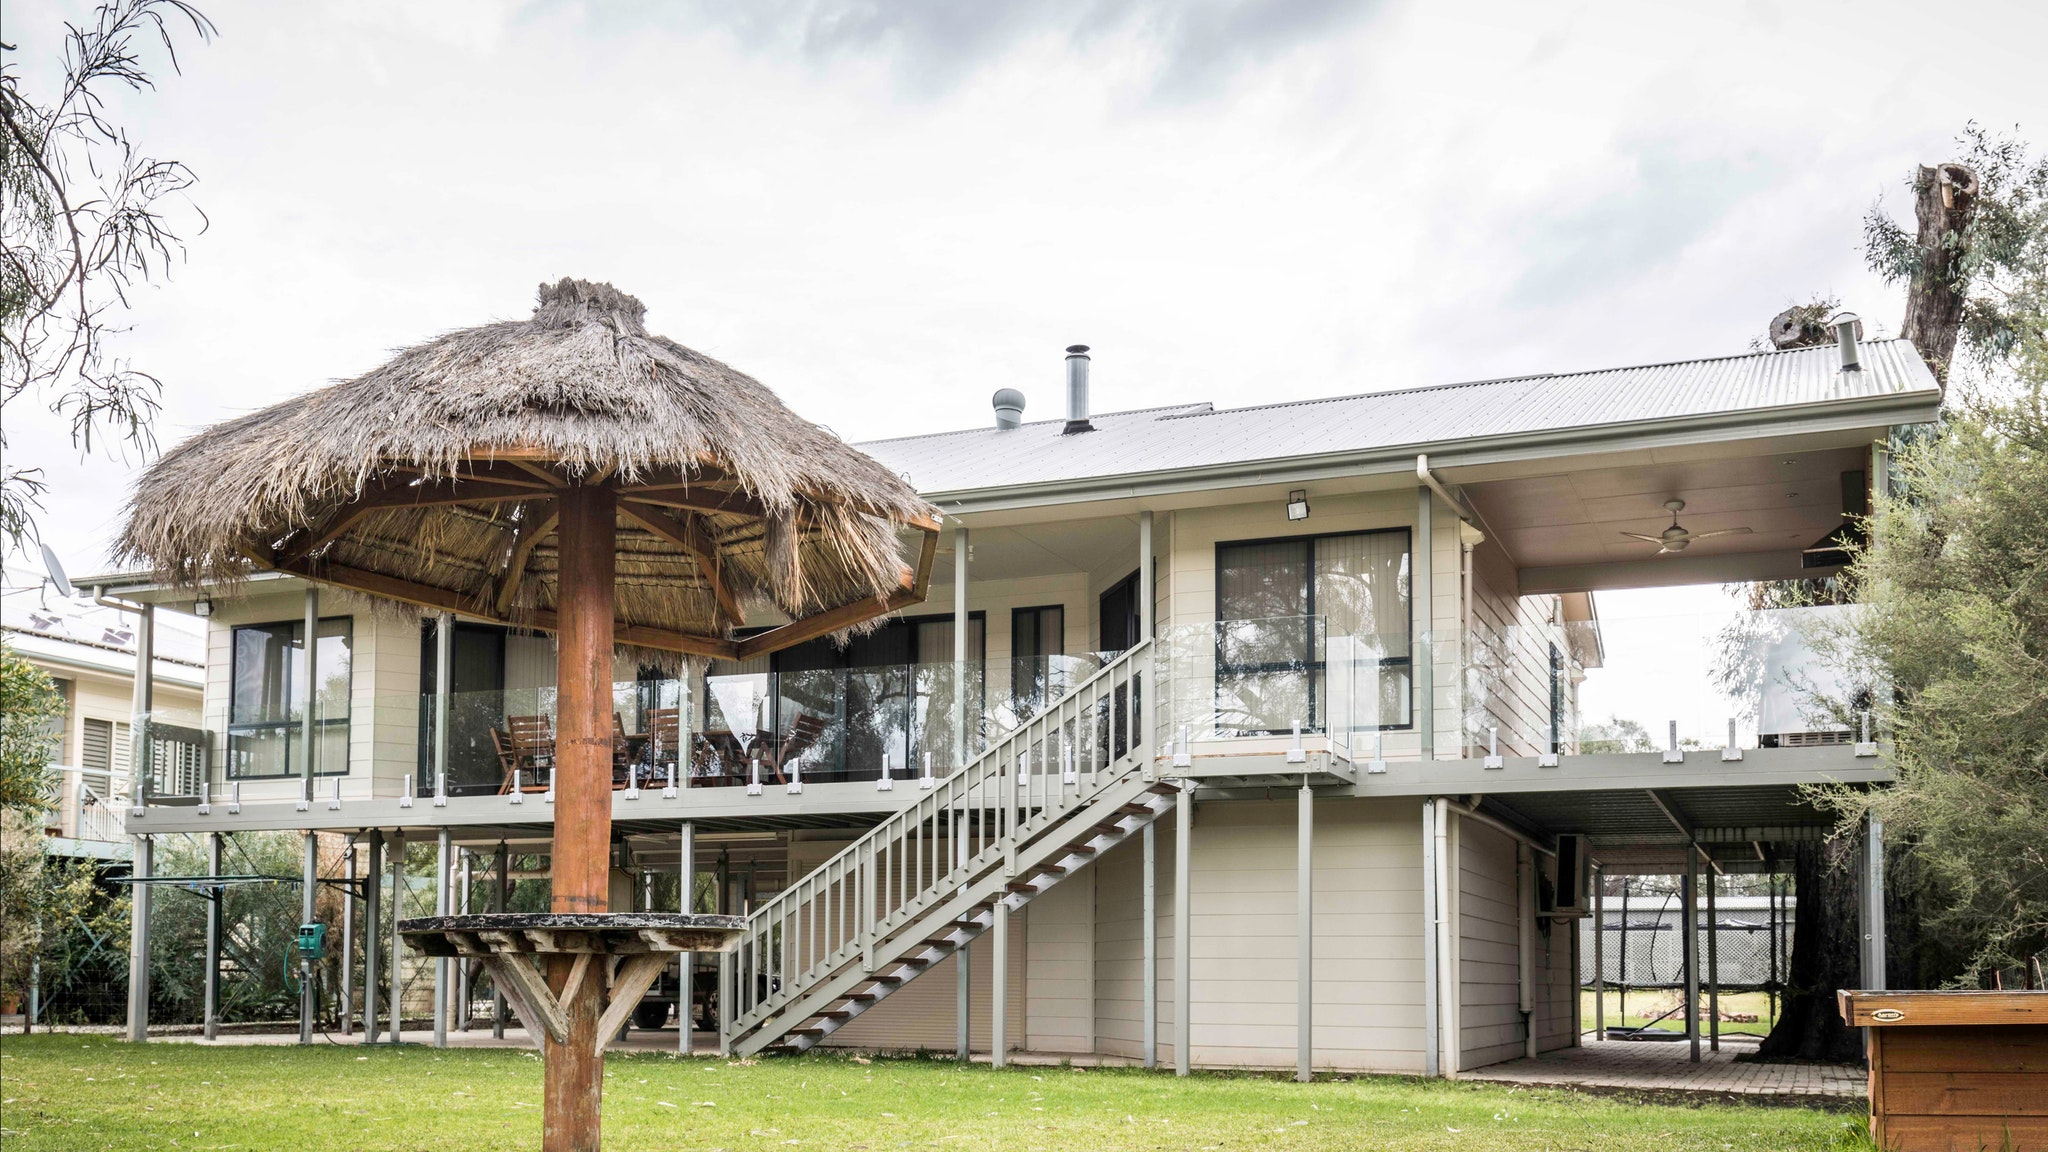 River Shack Rentals - Morgan  pelican pde - New South Wales Tourism